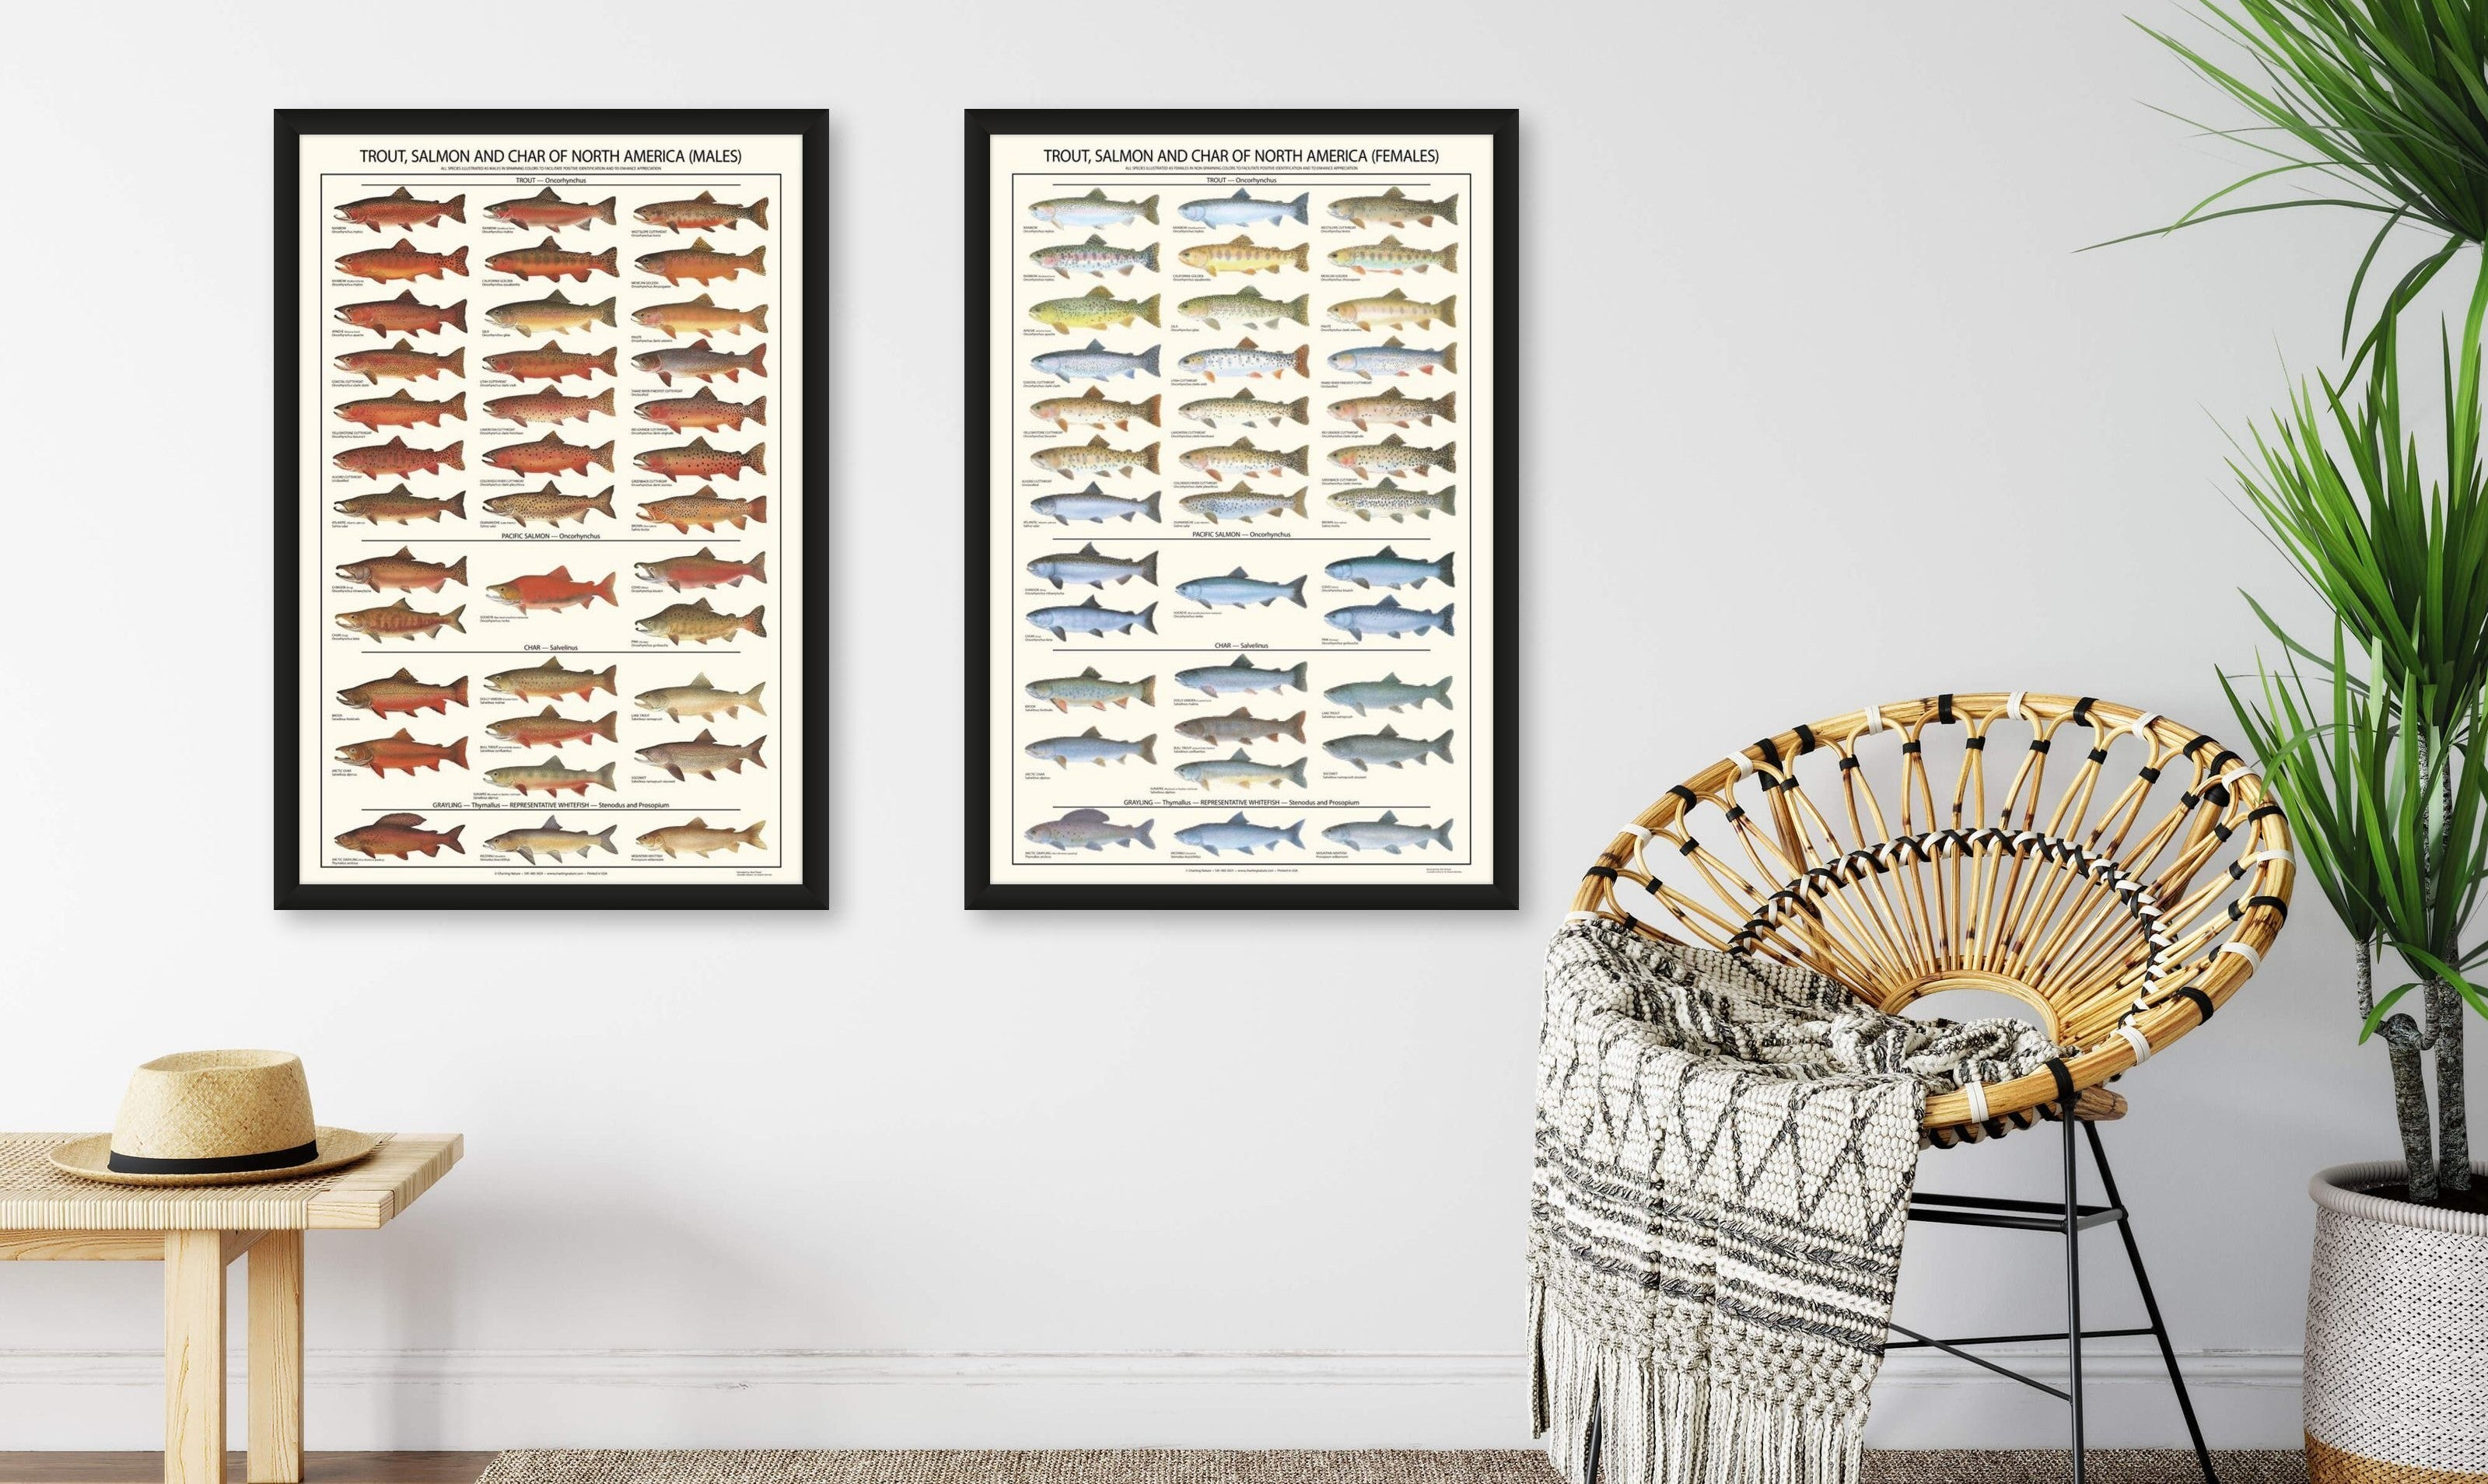 Trout Fish Posters and Identification Charts: